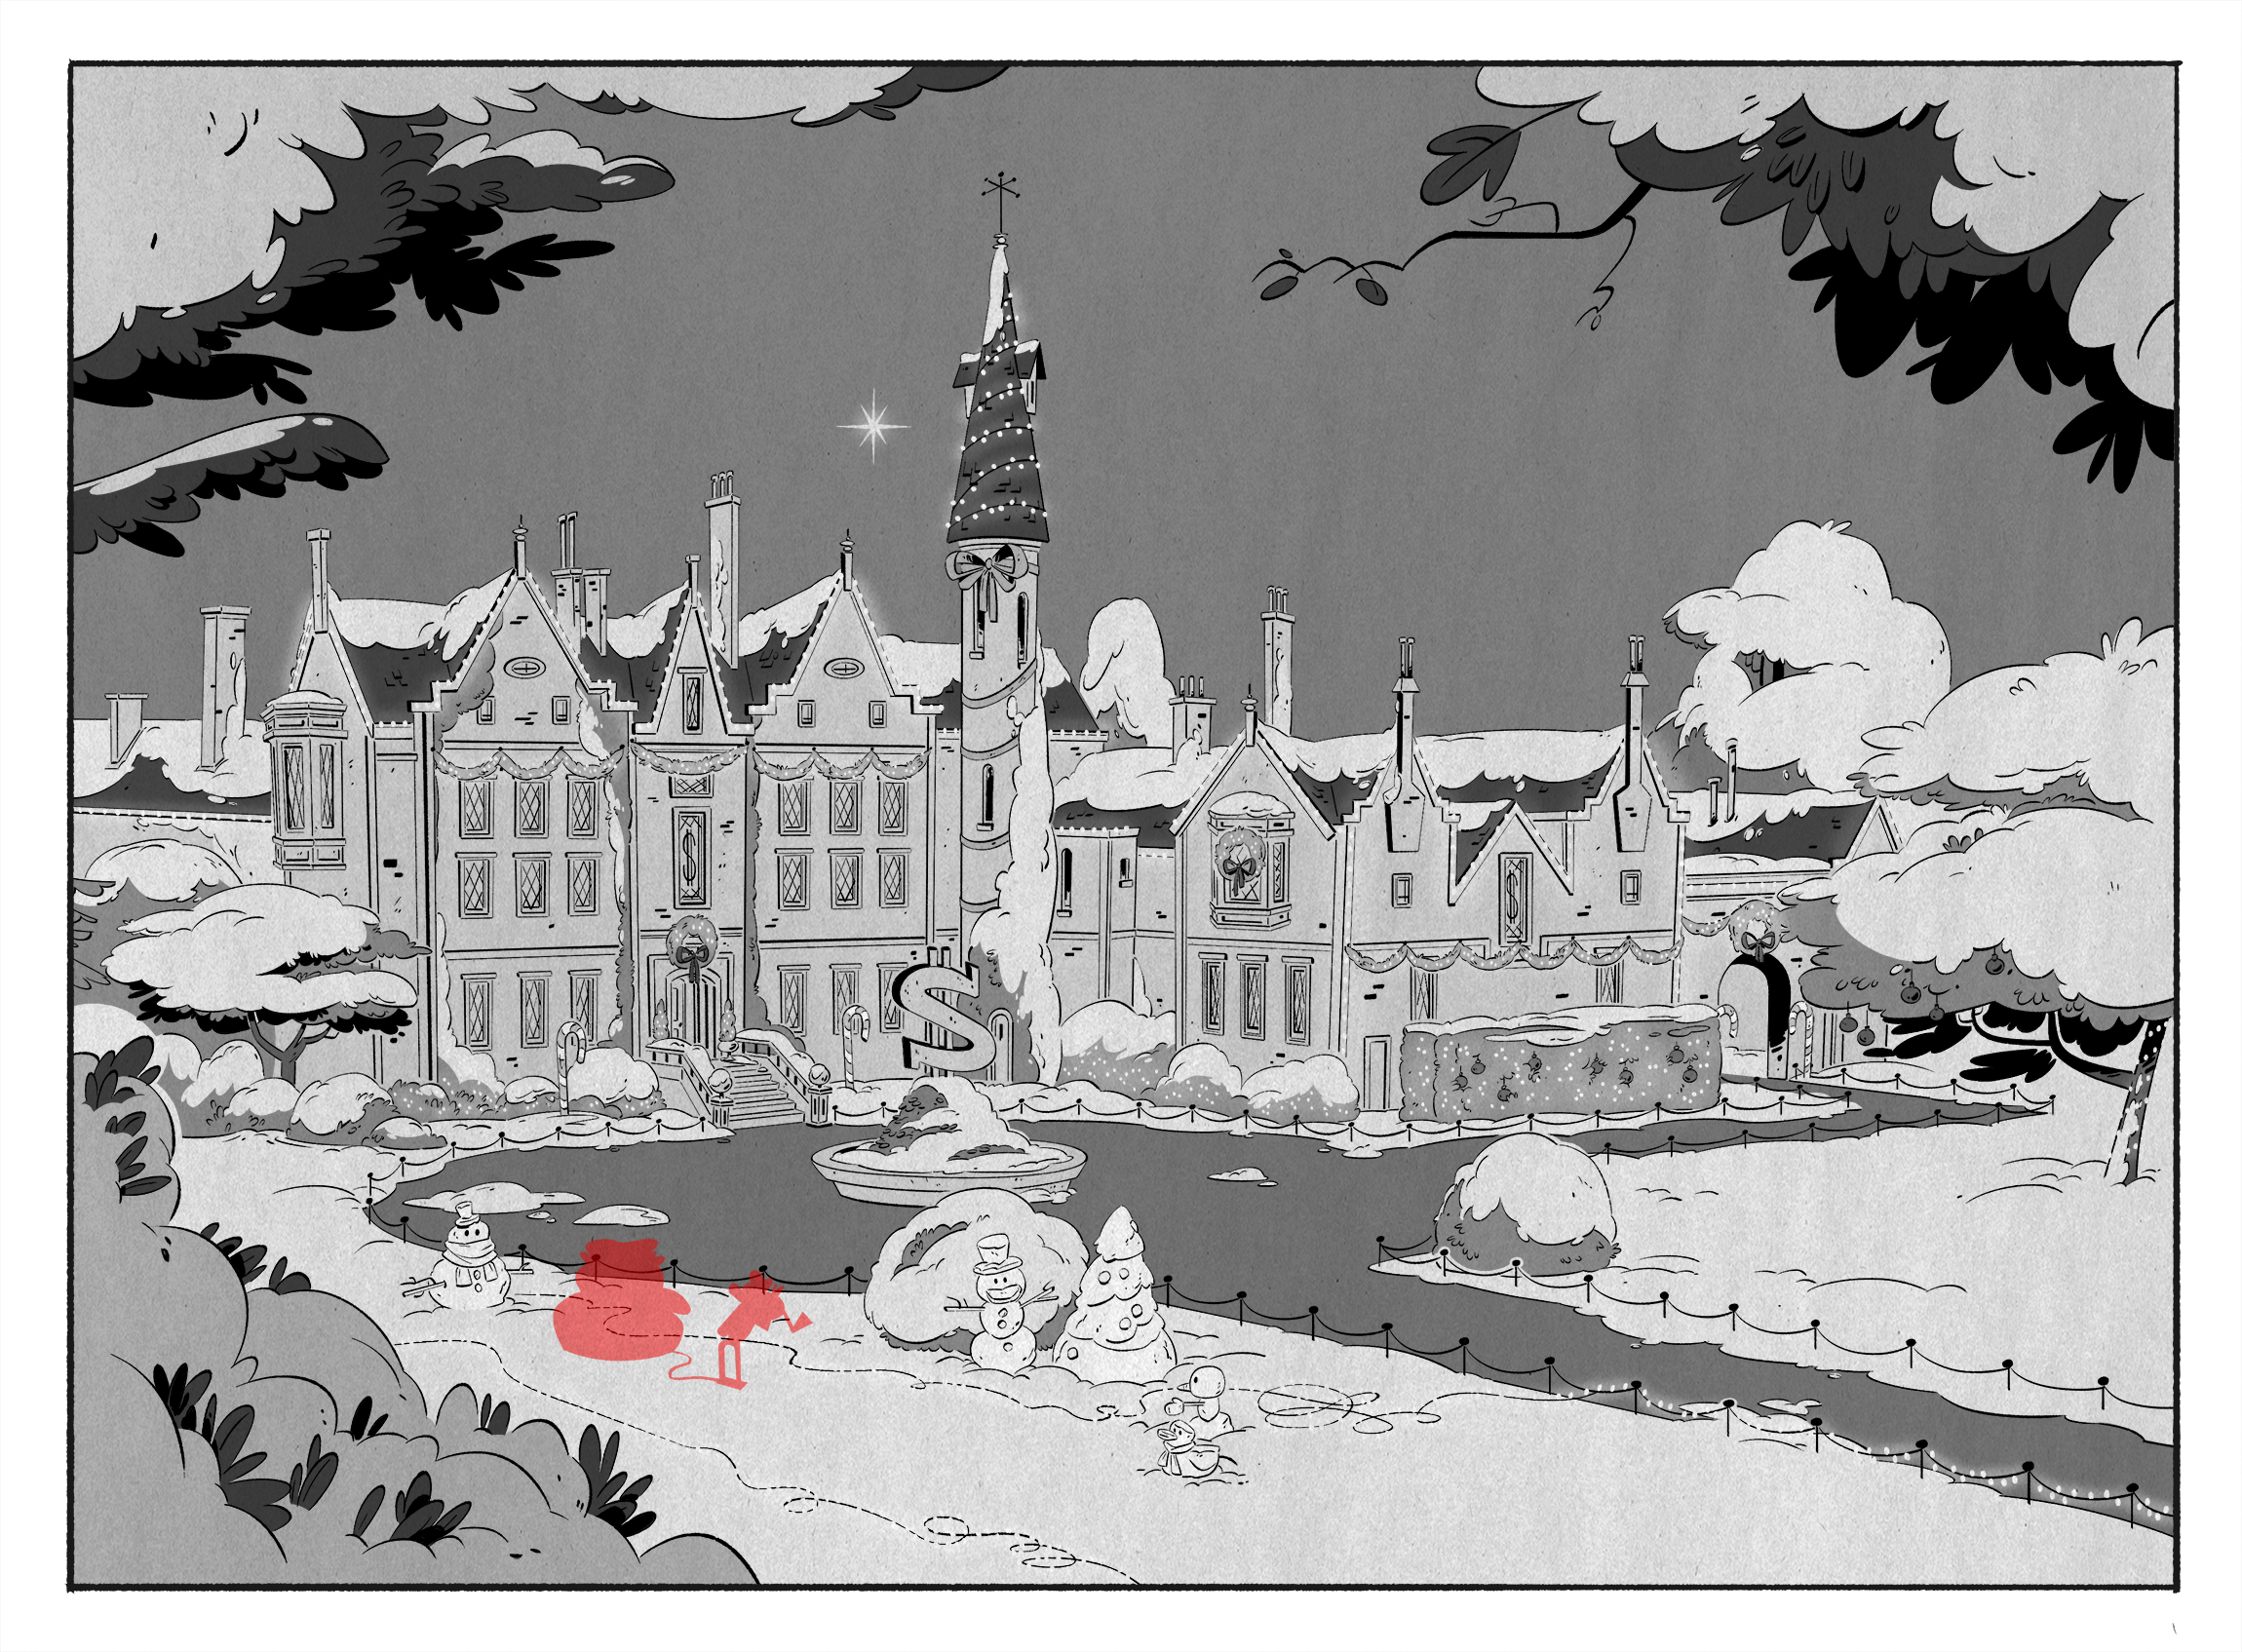 From Episode 6,  Last Christmas!  This is the present day mansion. We designed multiple versions of the mansion's Christmas decorations to indicate a shift in time since the characters are time traveling in this episode.